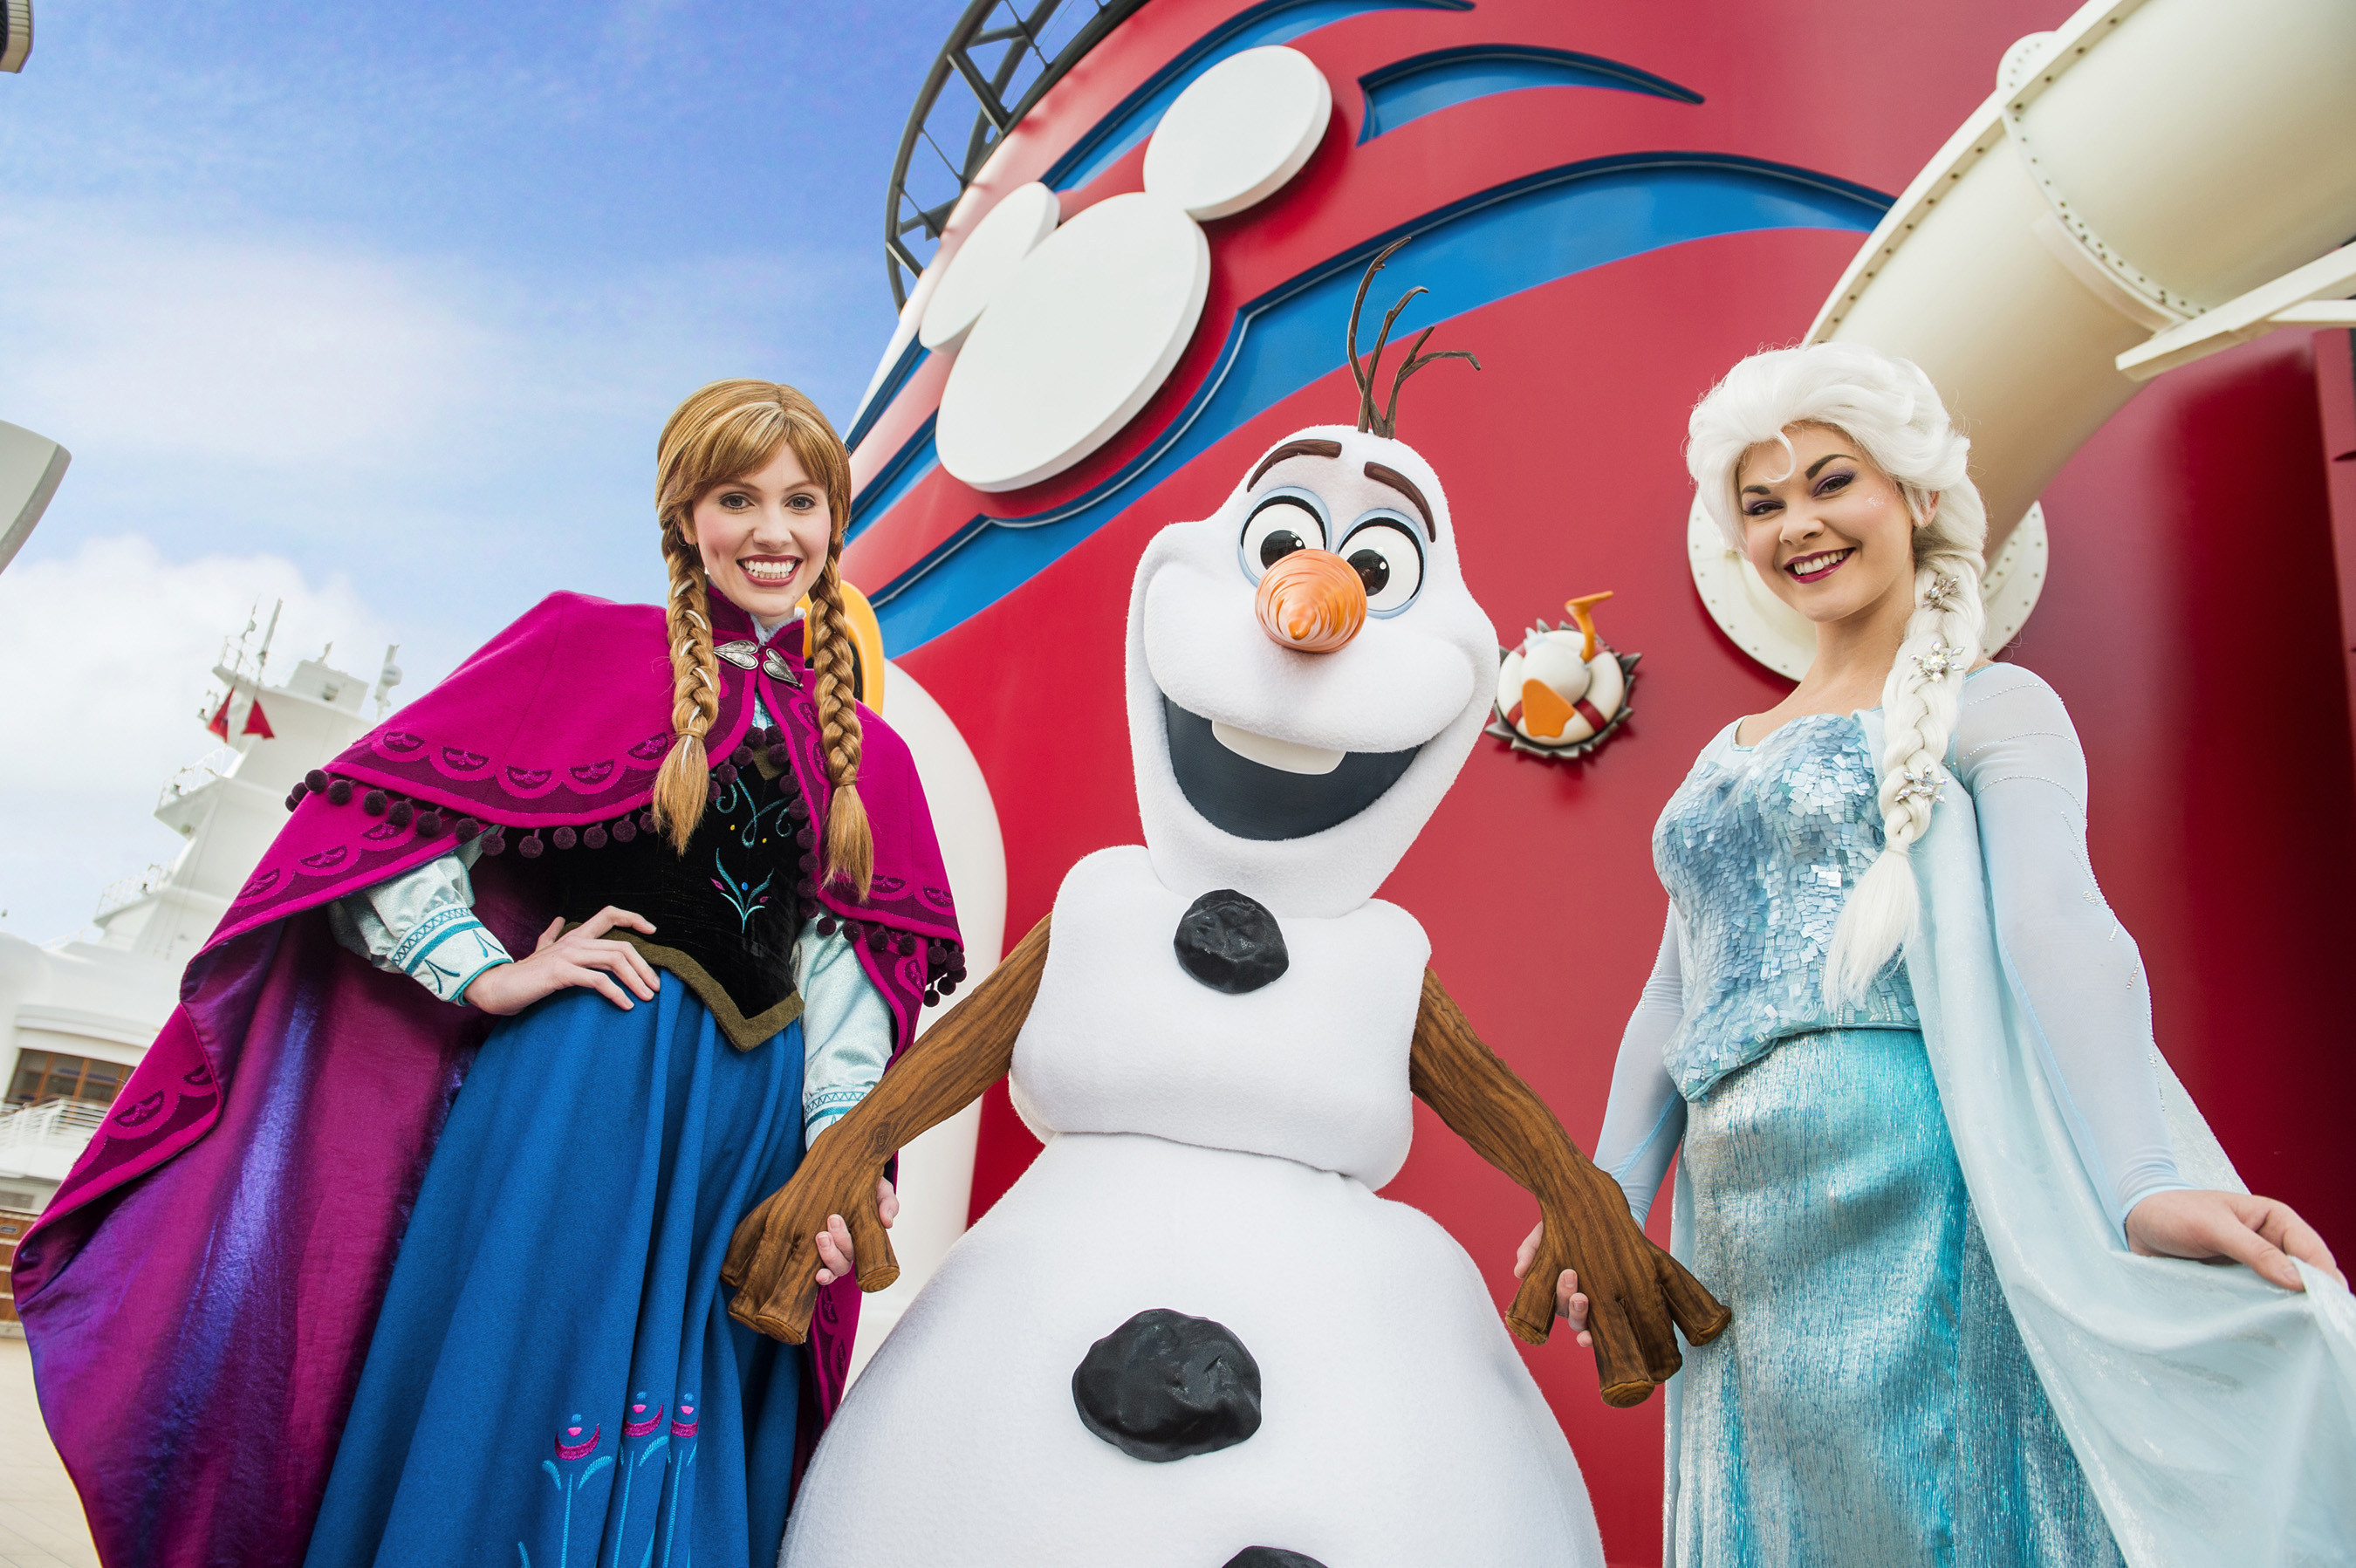 Frozen Comes to the Disney Cruise Line